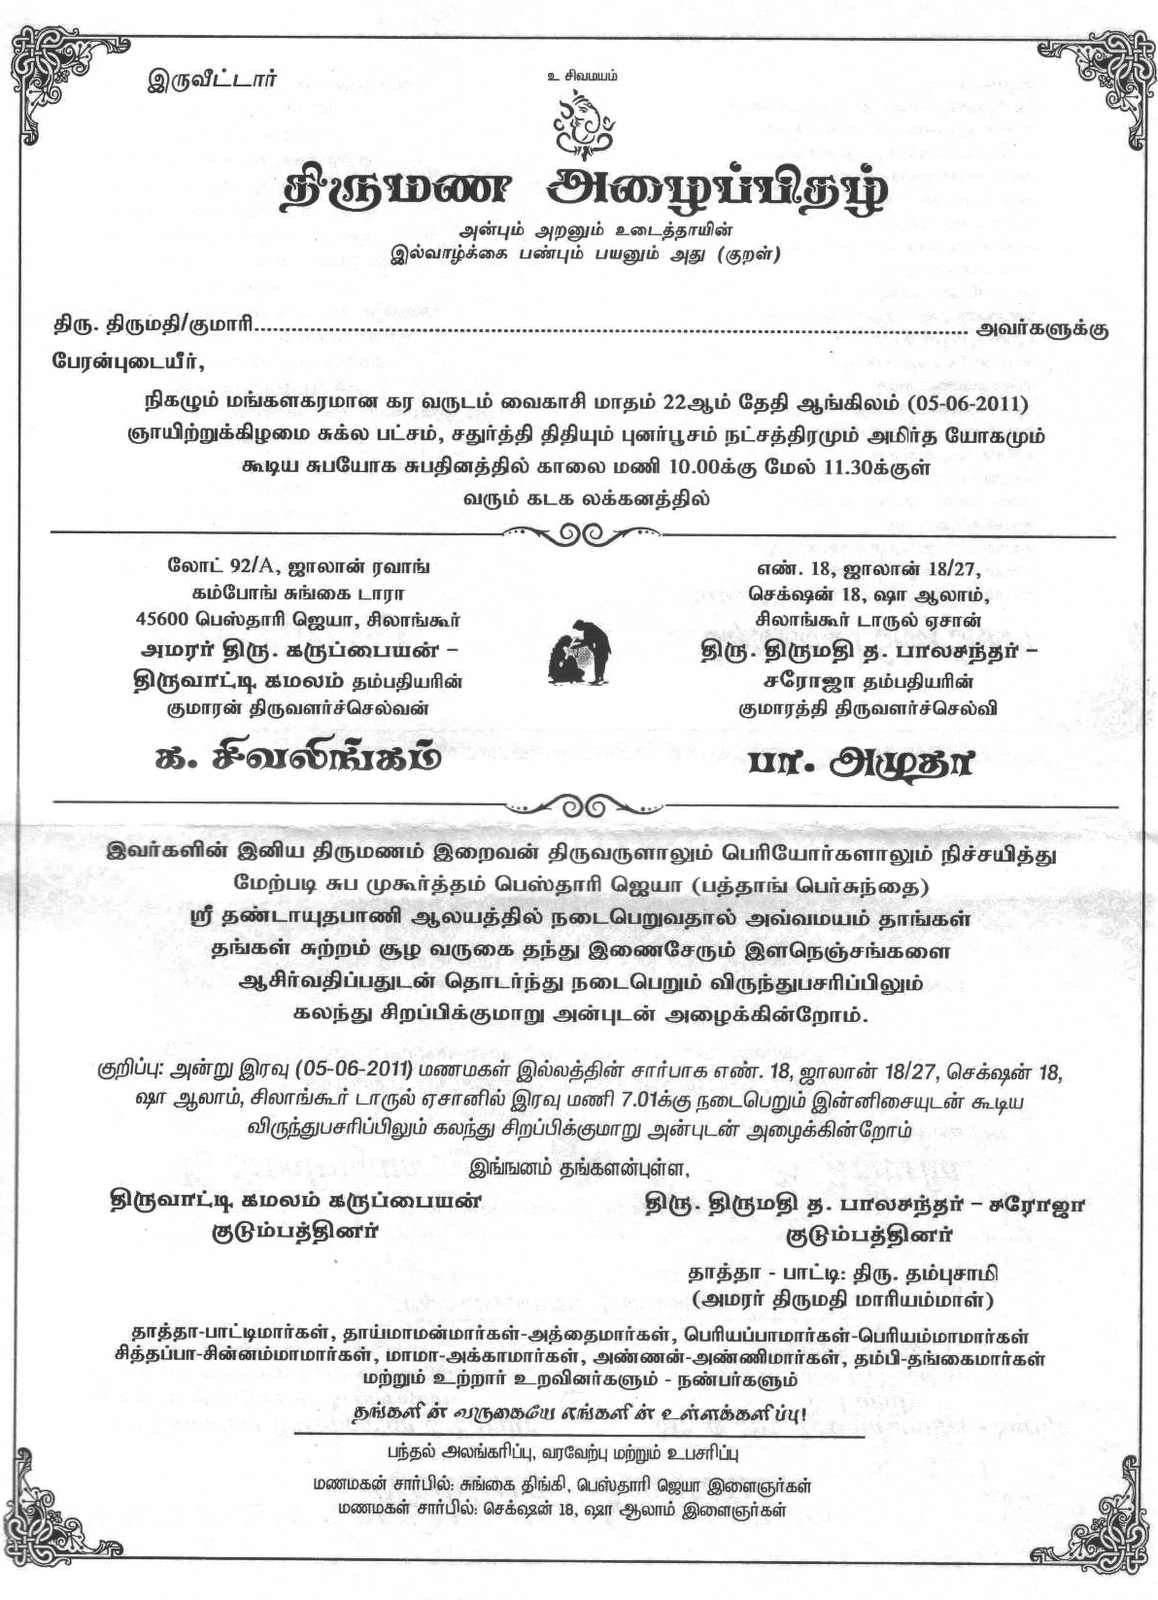 Wedding invitation sample in tamil yaseen for 44 home images tamil invitation templates tamil invitation templates stopboris Gallery